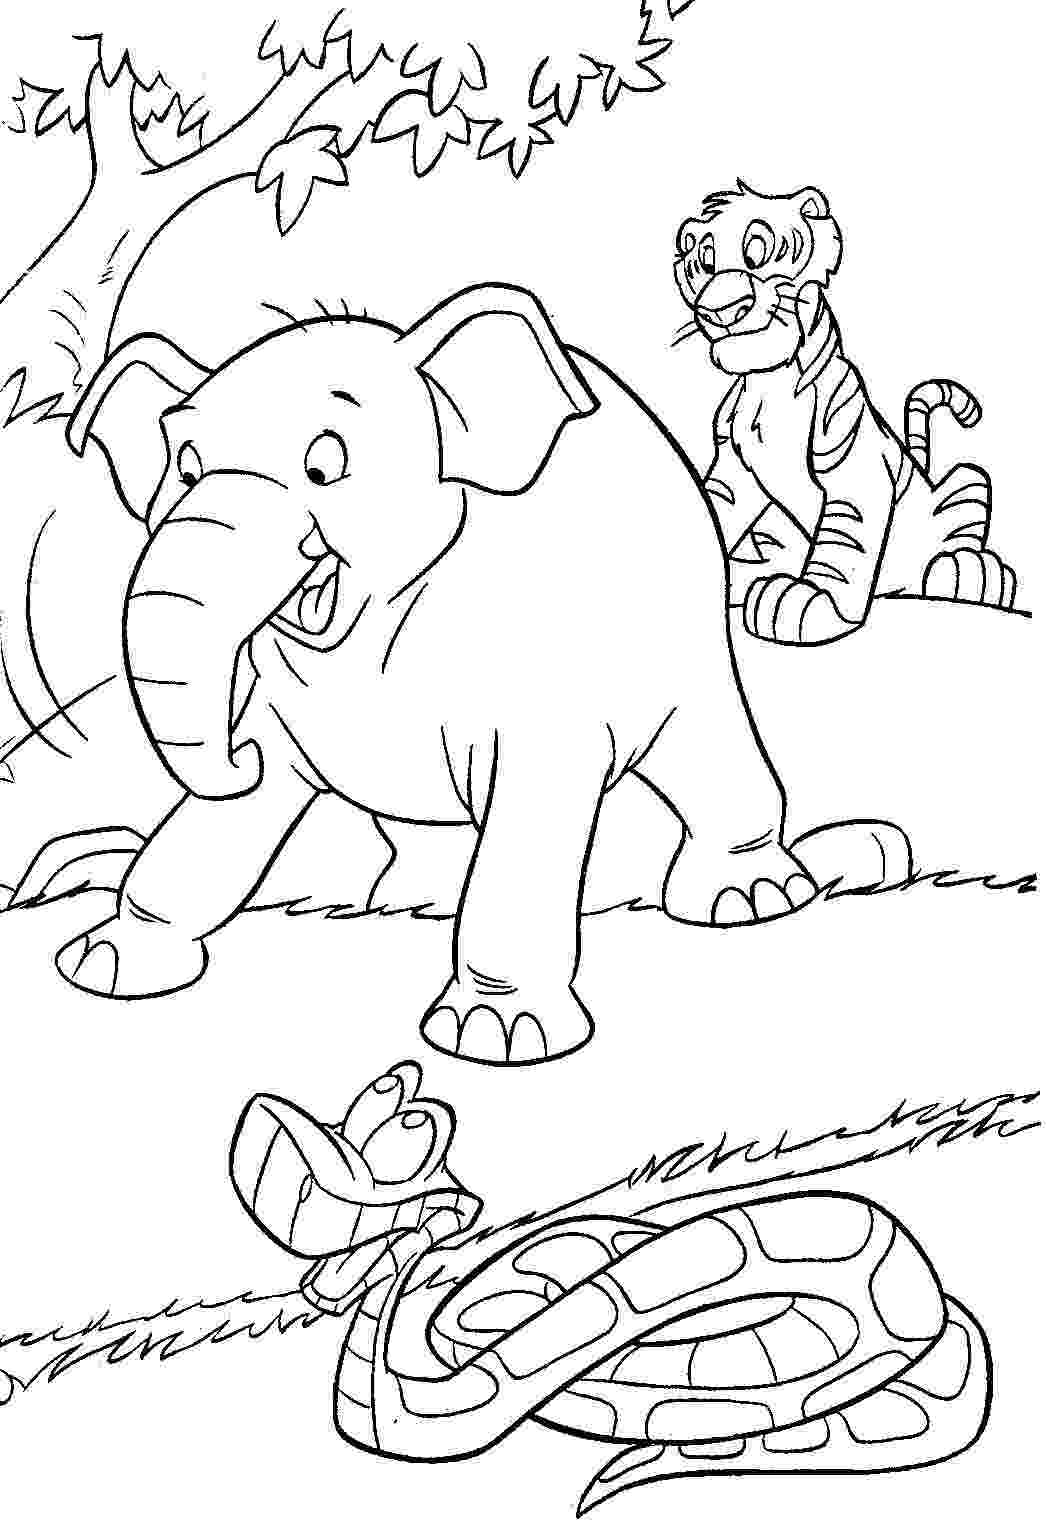 jungle coloring pages free jungle coloring pages best coloring pages for kids jungle free pages coloring